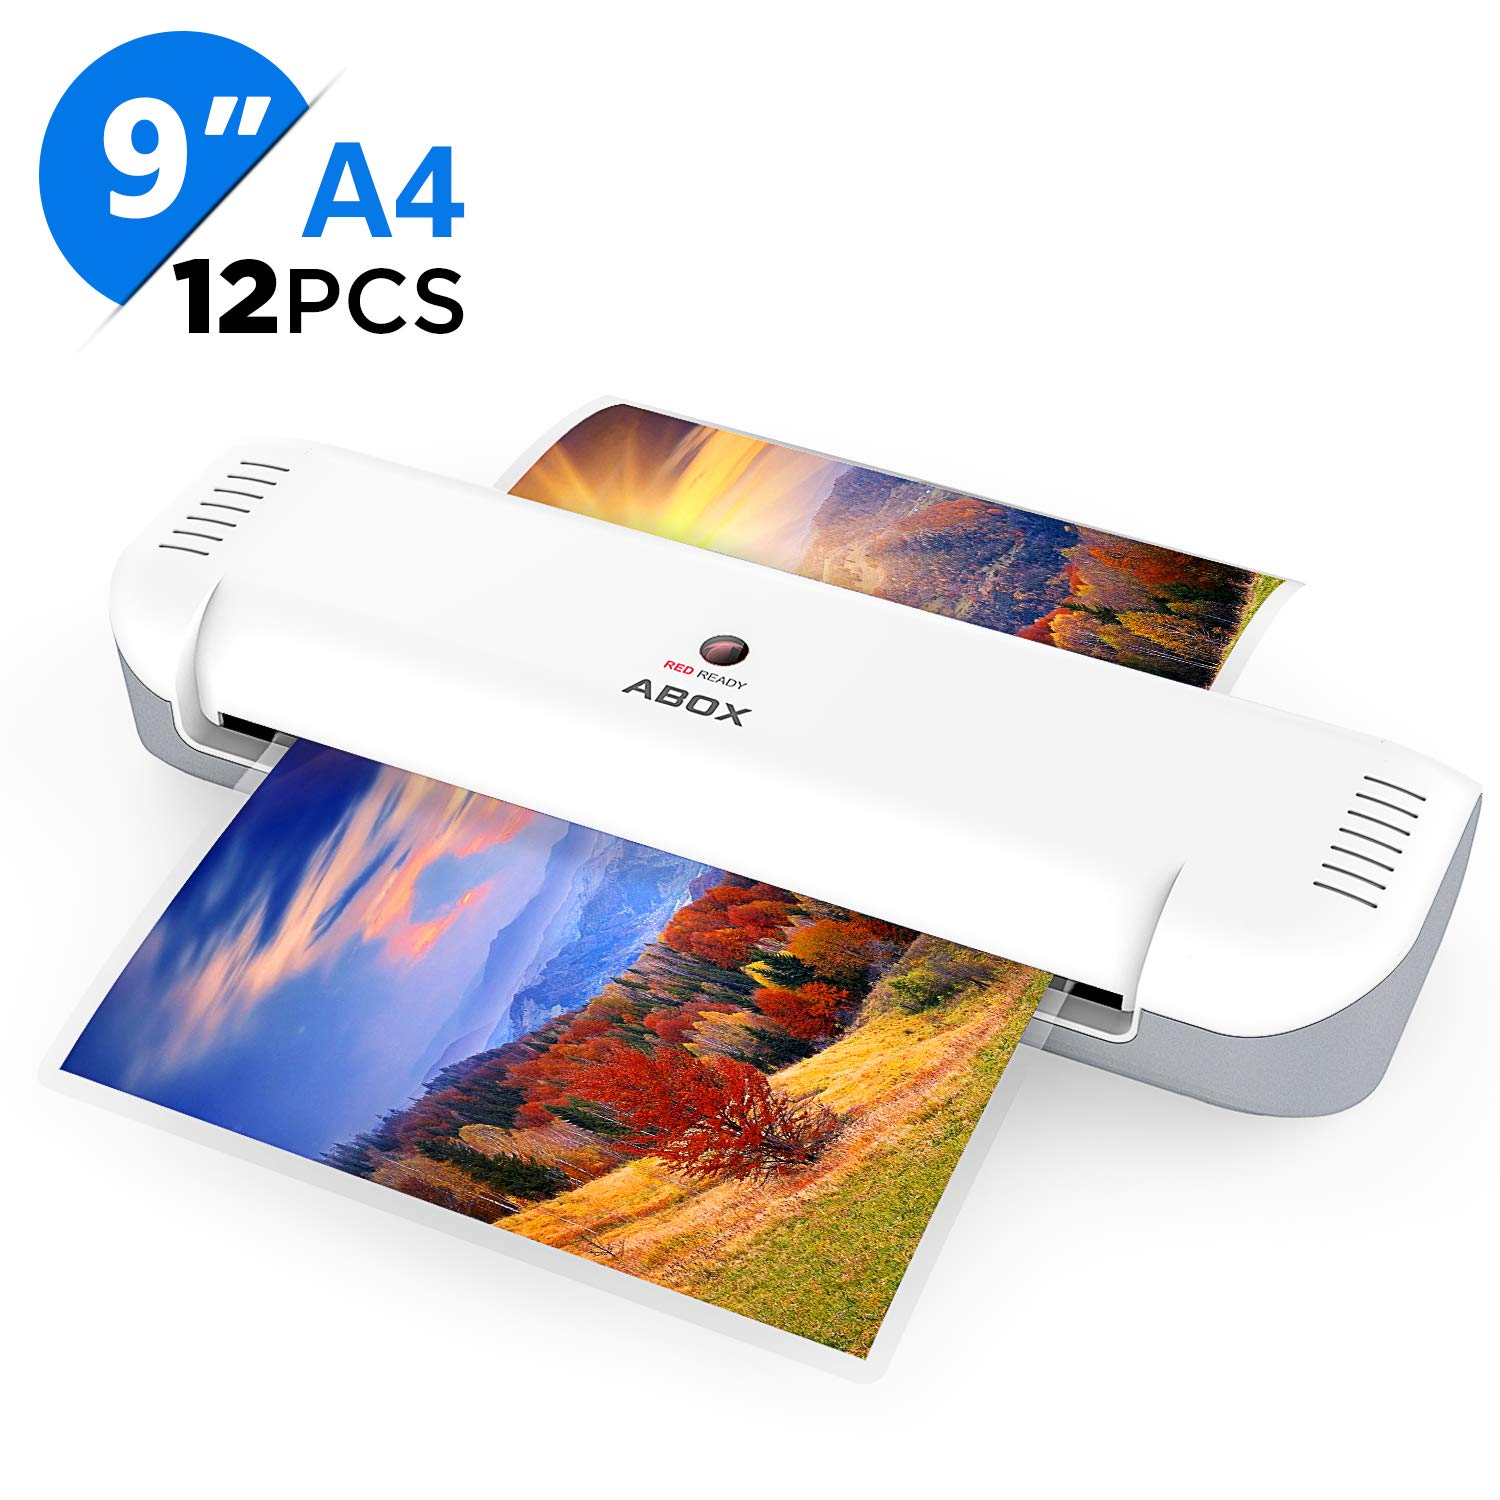 ABOX 9'' Thermal Laminator Machine for A4/A5/A7, 2019 Newest Portable Laminating Machine with 12 Laminating Pouches, Two Roller System, 2 Min Fast Warm-up, High Speed&No Bubbles,for Home/Office/School